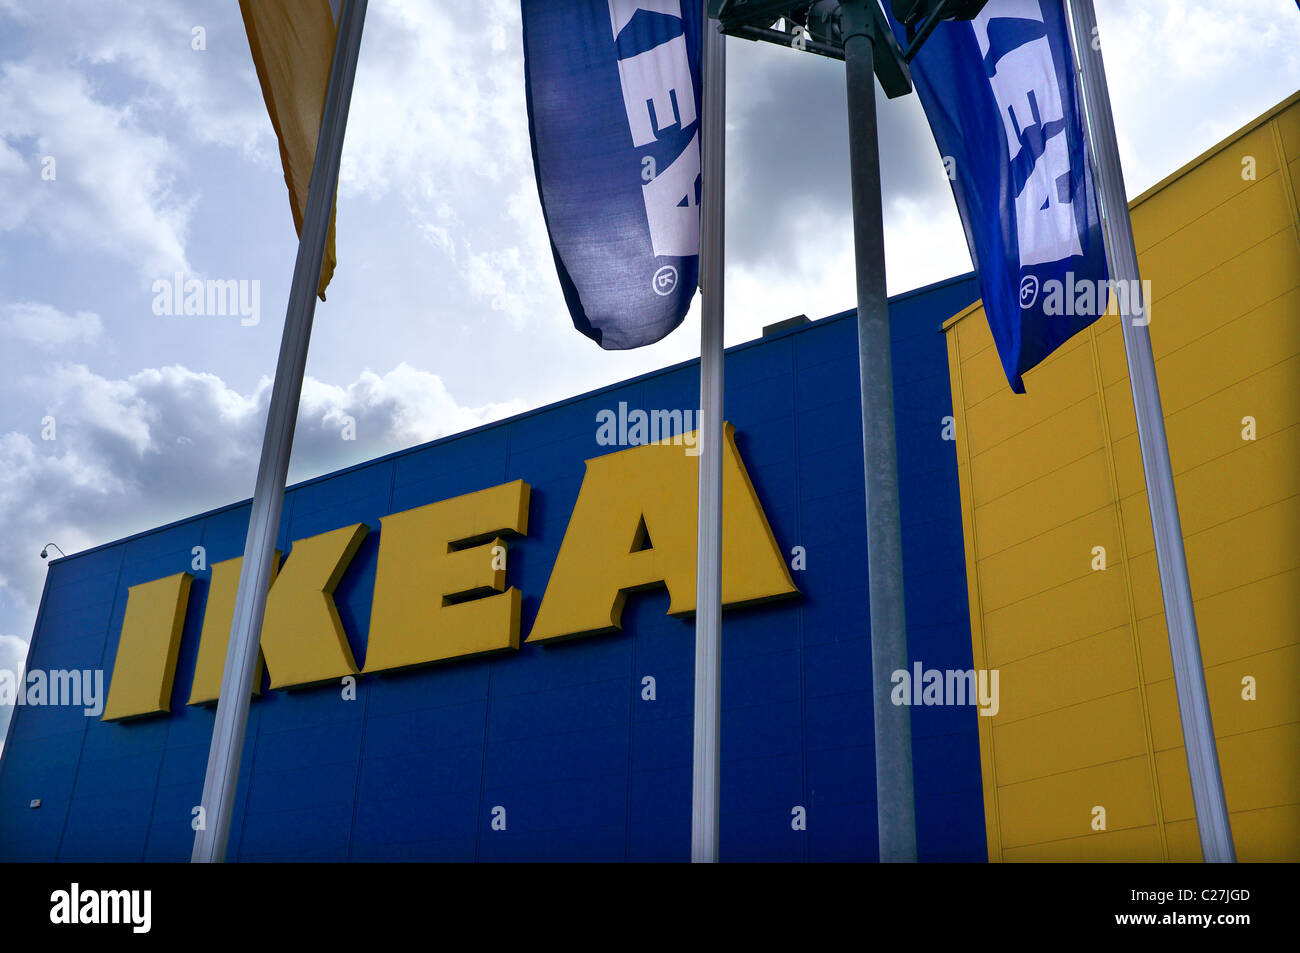 Ikea store london stock photo royalty free image for Ikea shops london